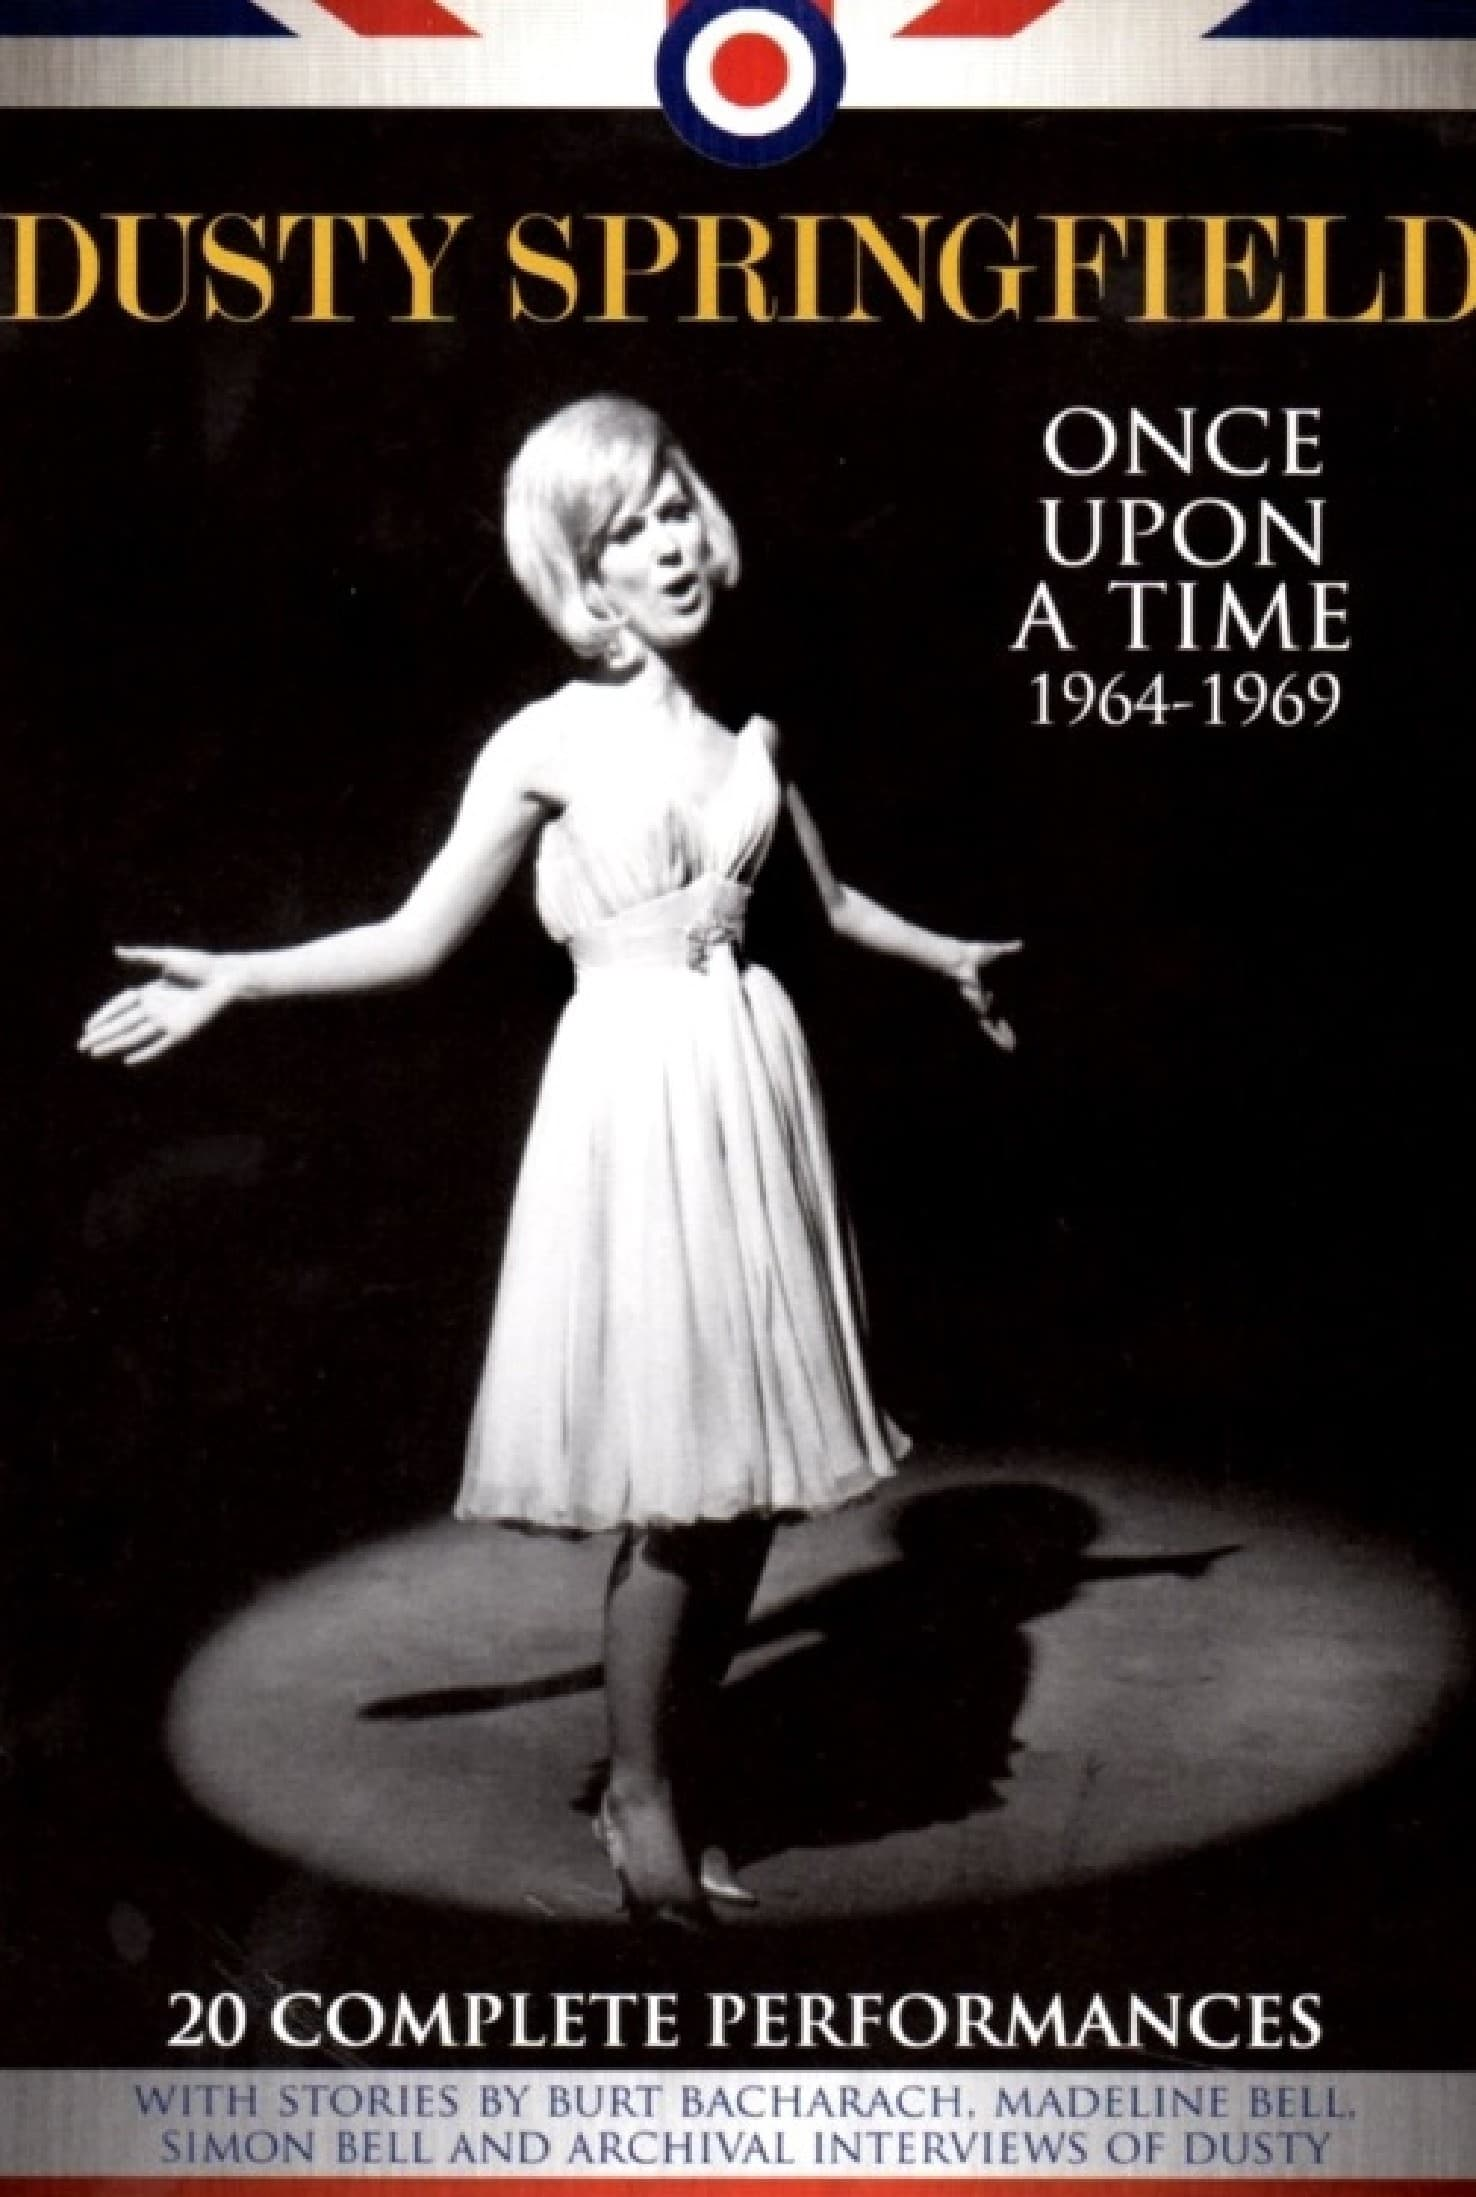 Dusty Springfield: Once Upon a Time (1964-1969)